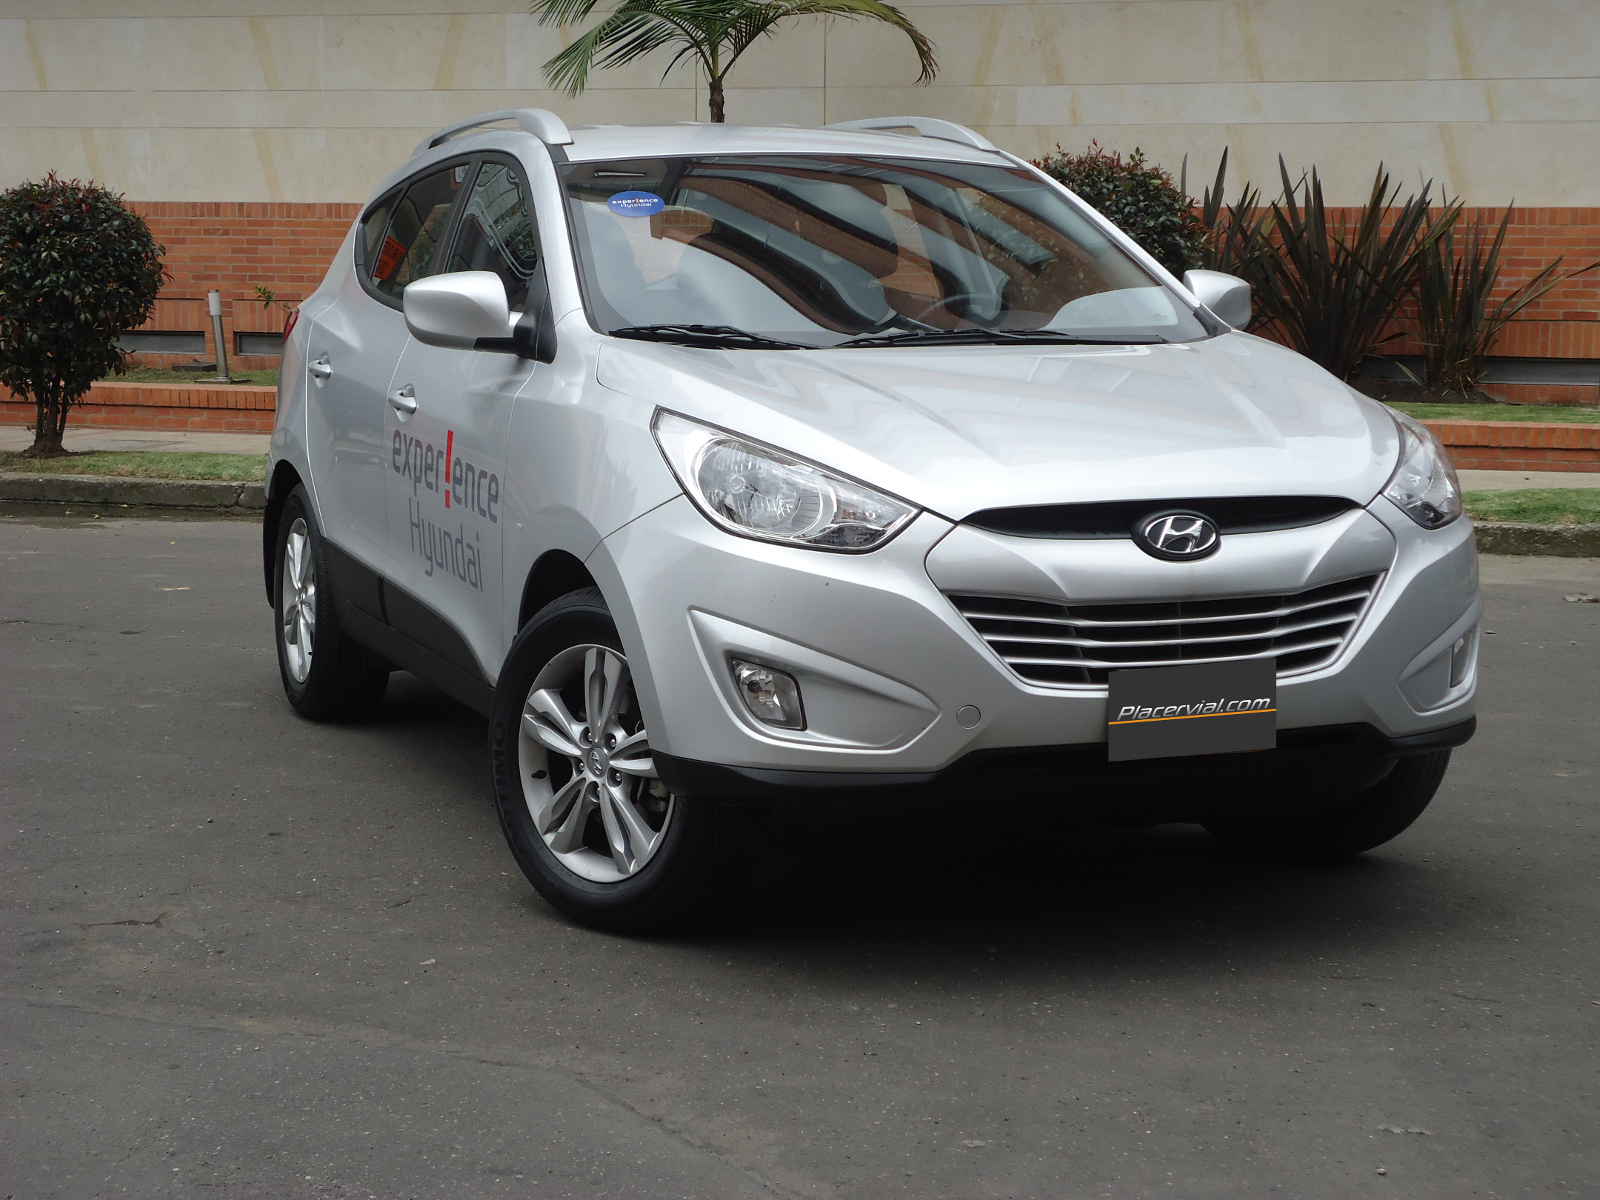 hyundai ix35 tucson prueba de consumo. Black Bedroom Furniture Sets. Home Design Ideas